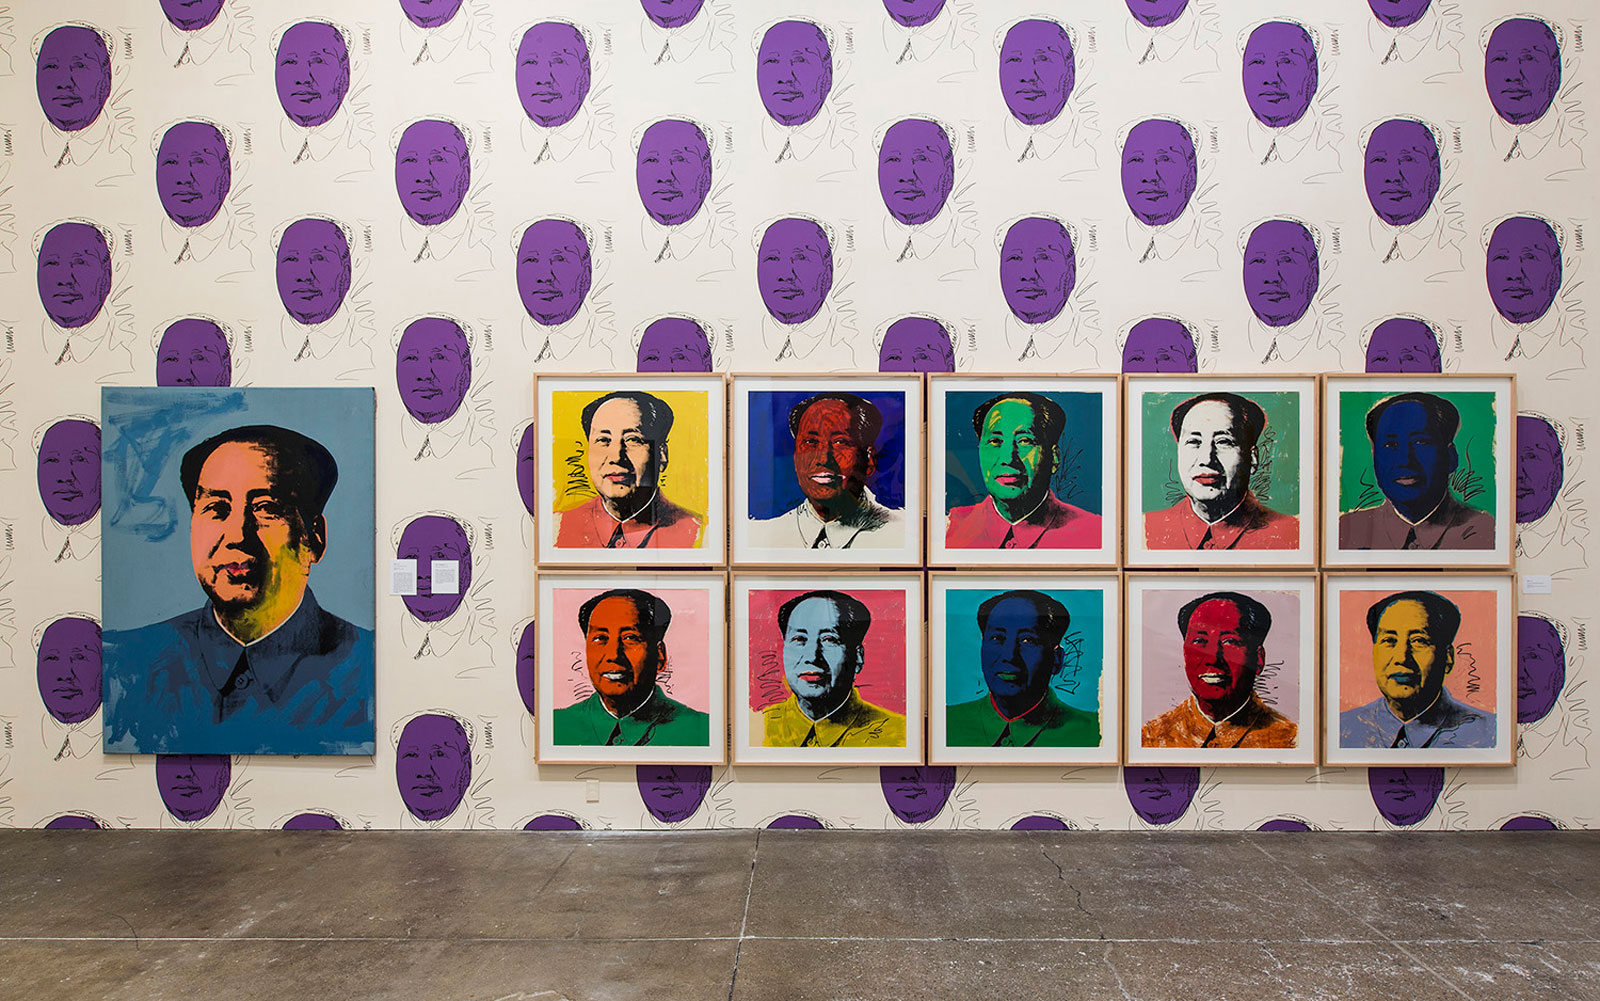 What to Know Before Visiting Pittsburgh's Andy Warhol Museum